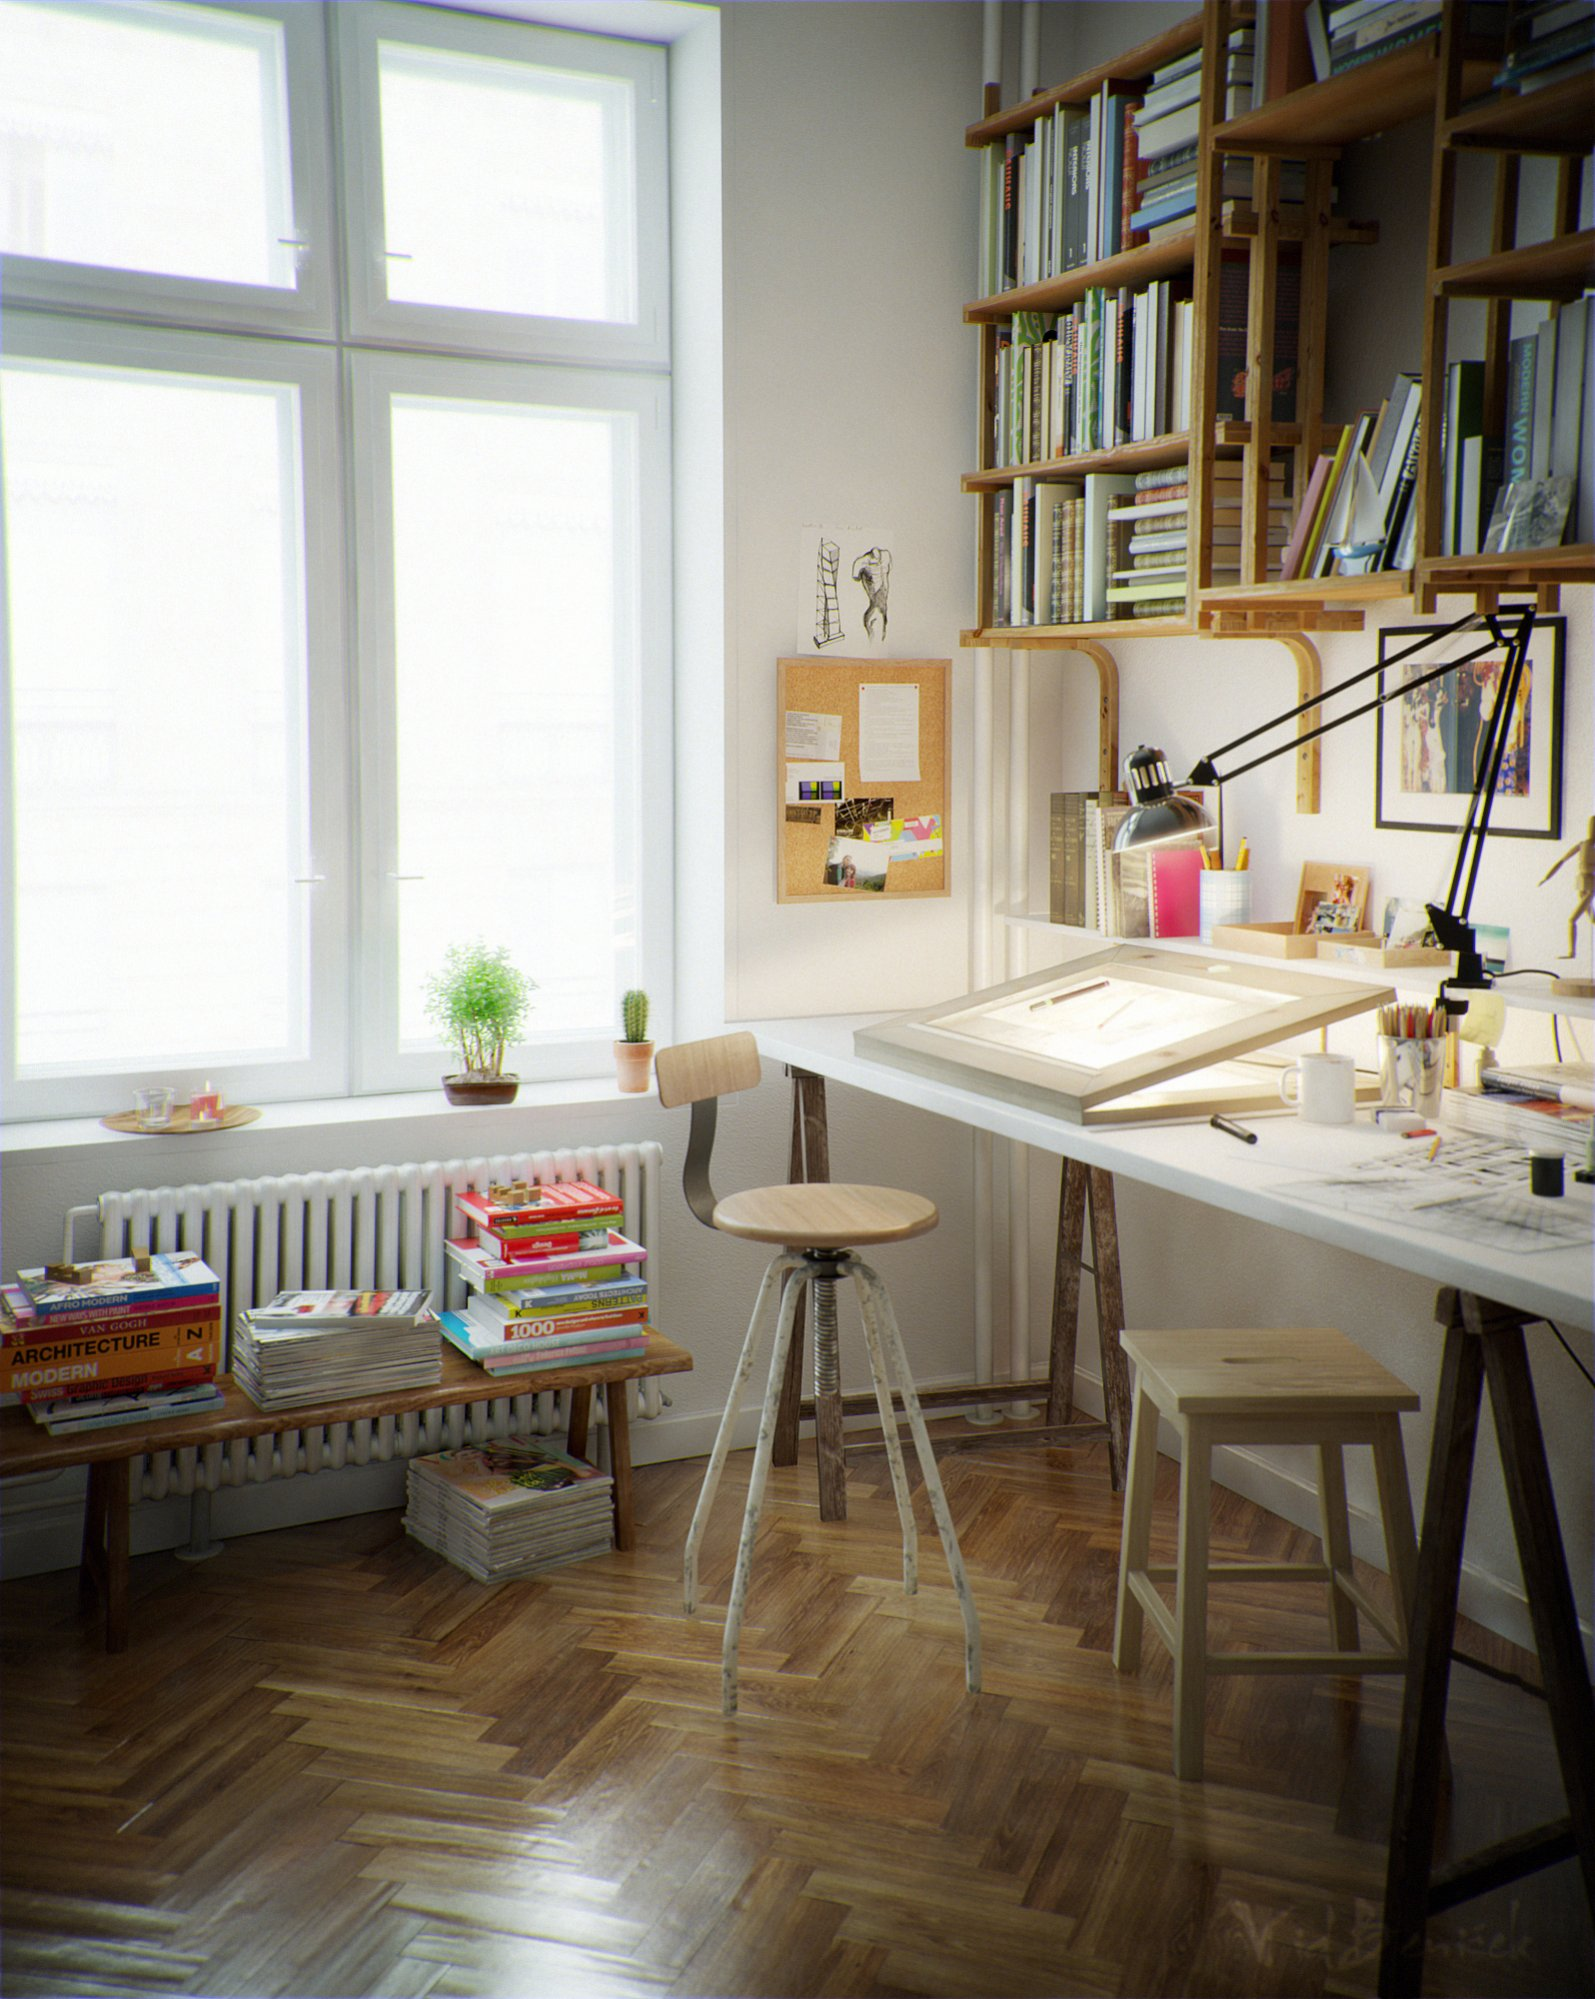 Imgs for home art studio tumblr - Home art studio ...